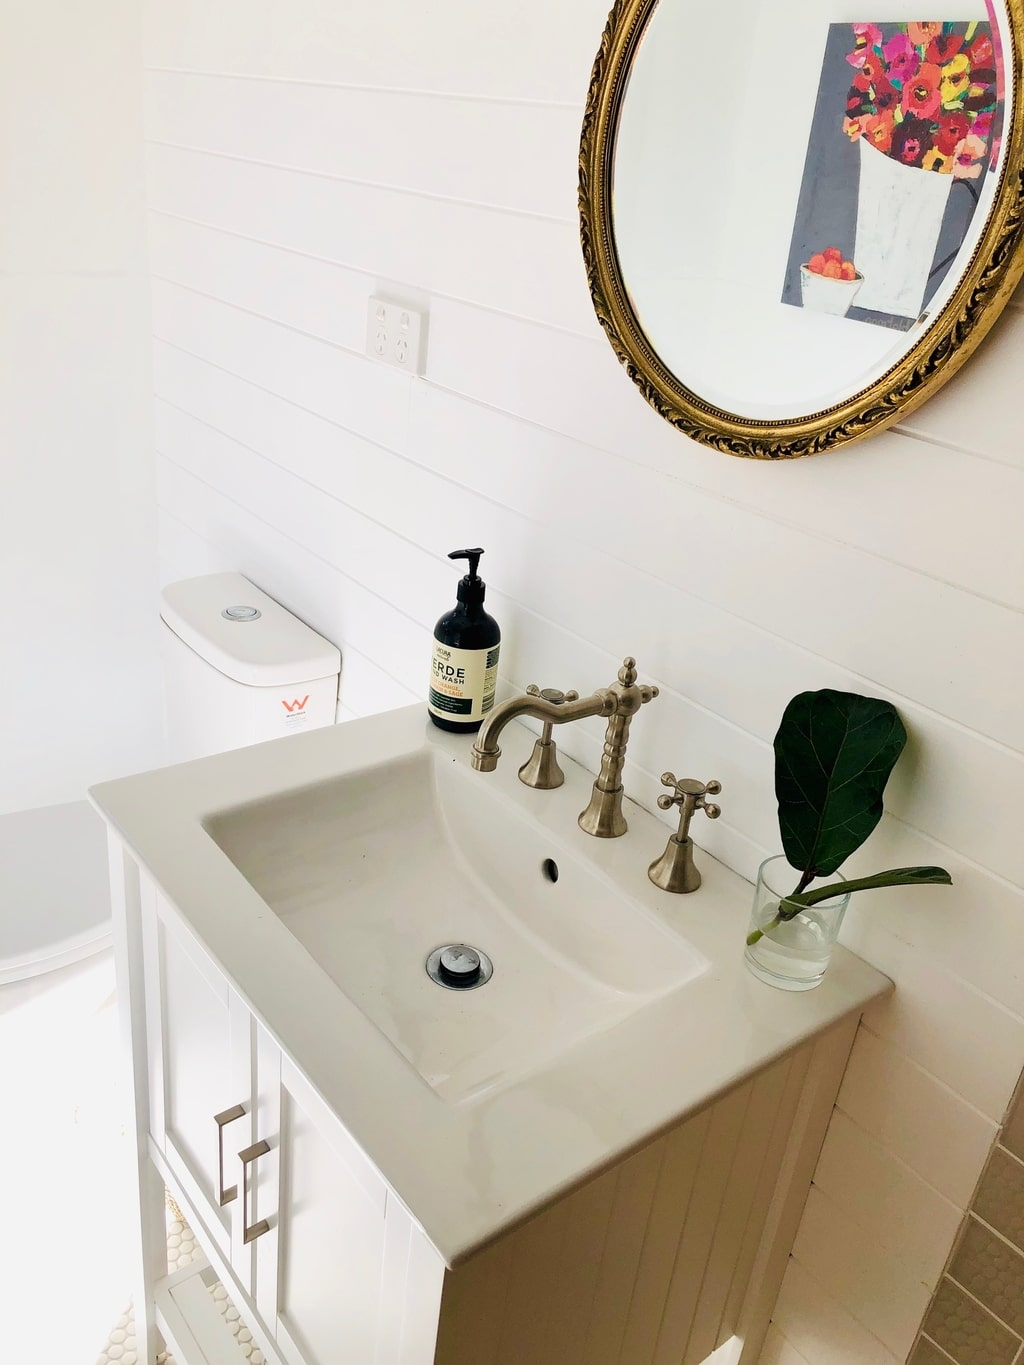 Guest house in ACT: vanity